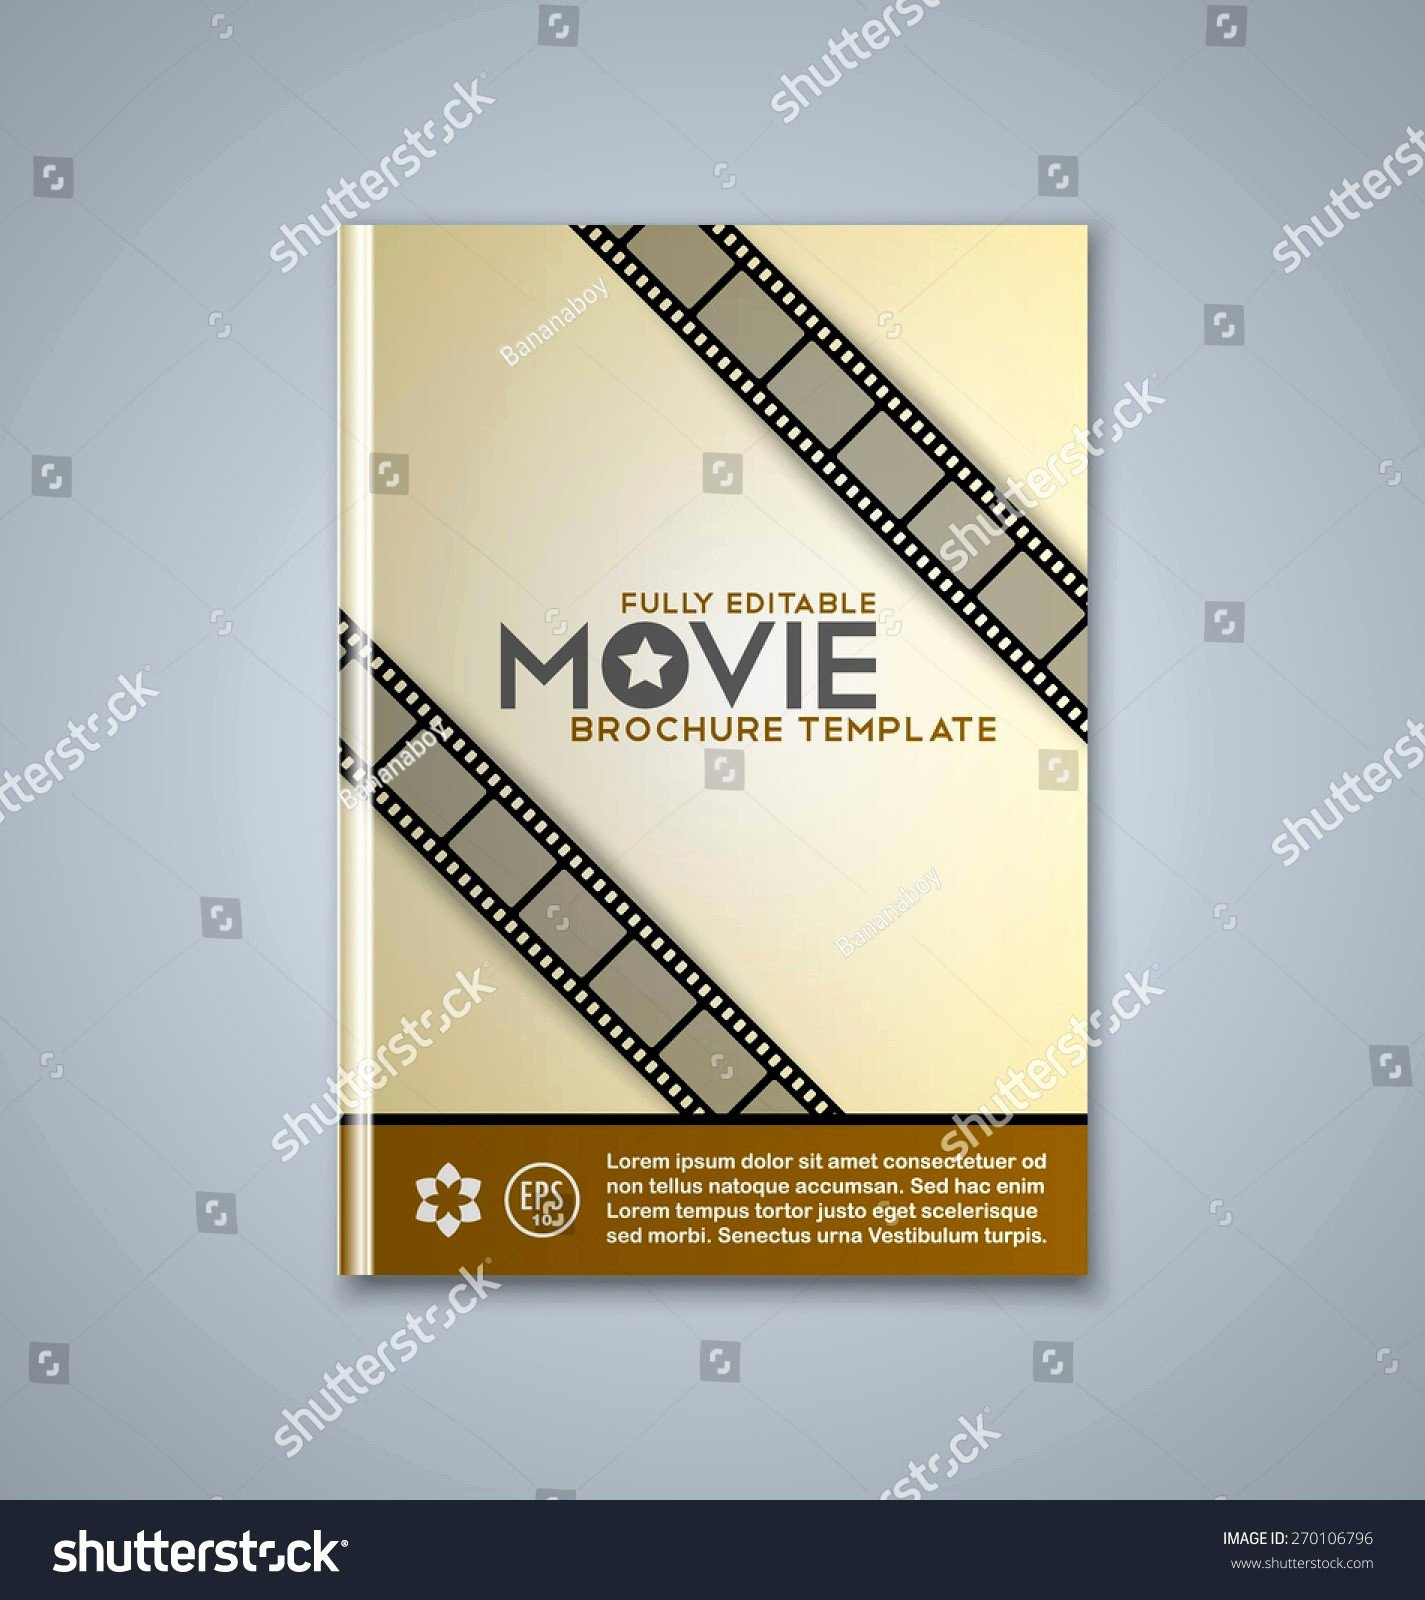 Brochure Templates Google Drive 57 Fresh Collection How to Make A Brochure Google